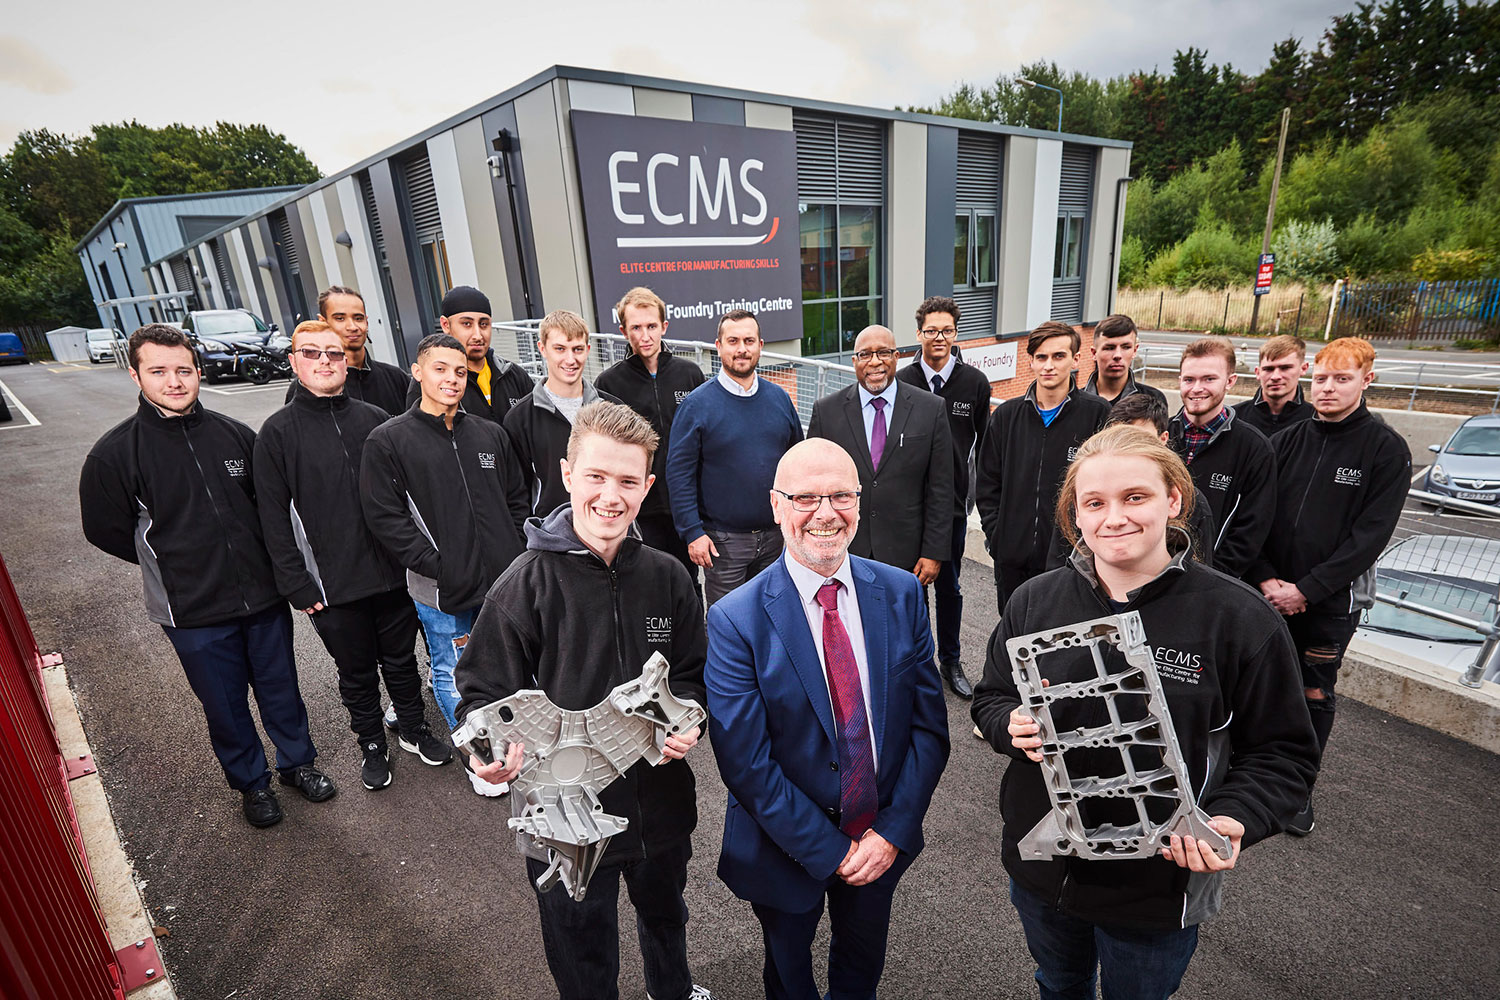 Apprentices get fired up about manufacturing at new foundry - Elite Centre for Manufacturing Skills (ECMS)